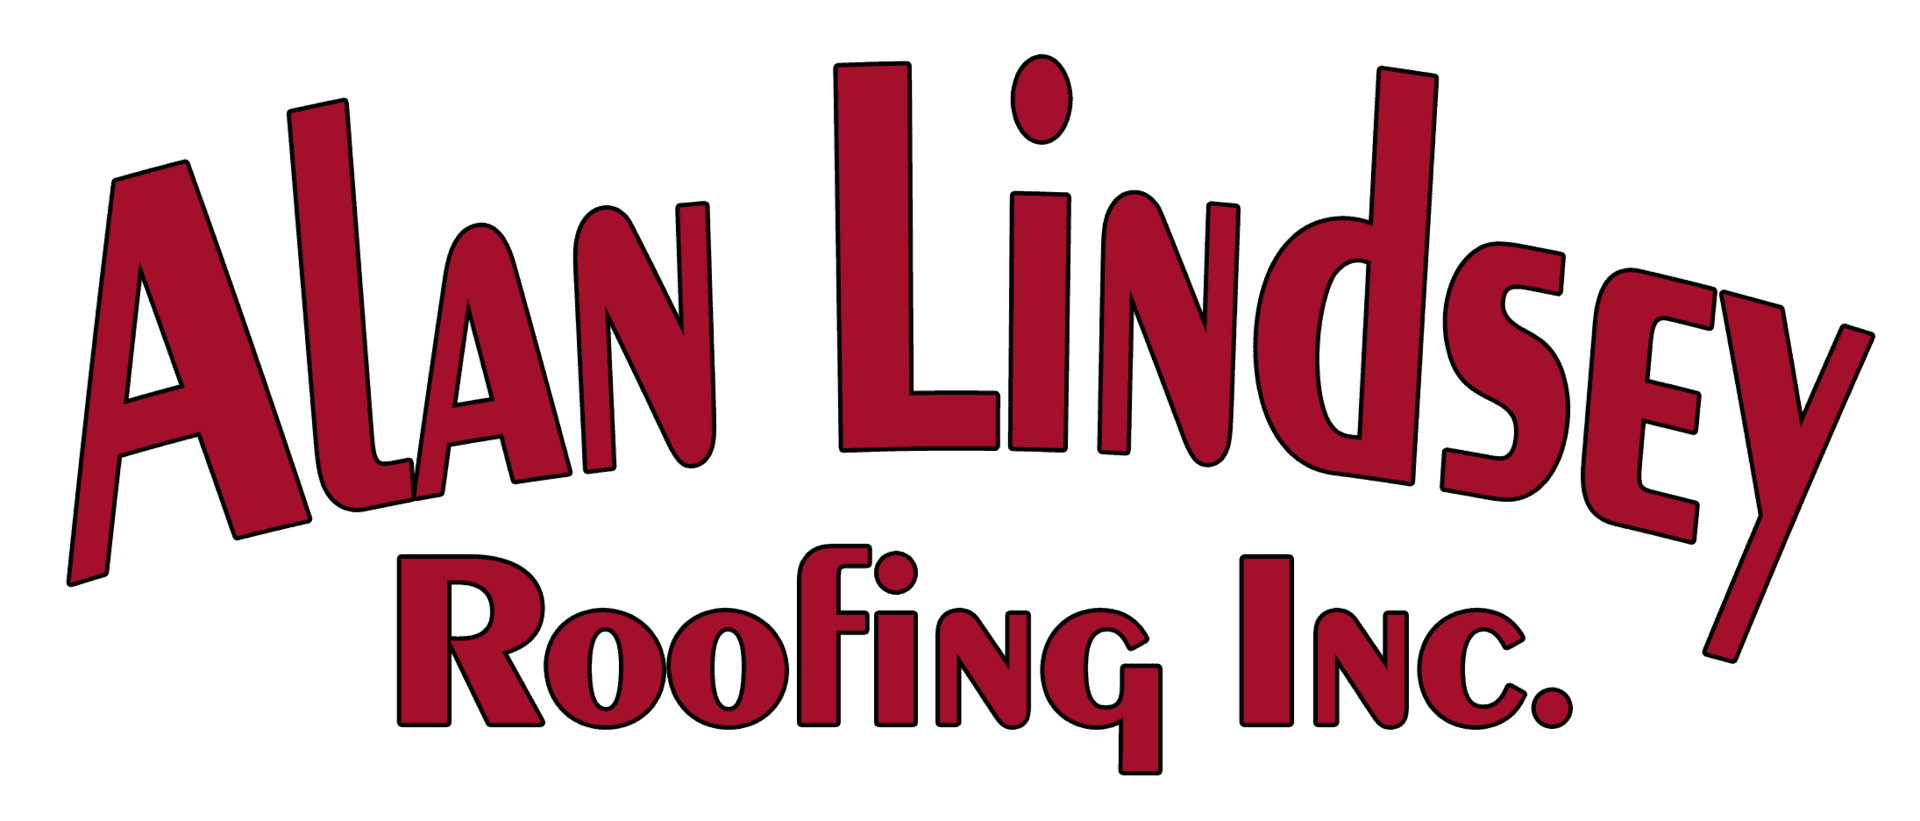 Roofing Contractor Ocala Fl Alan Lindsey Roofing Inc